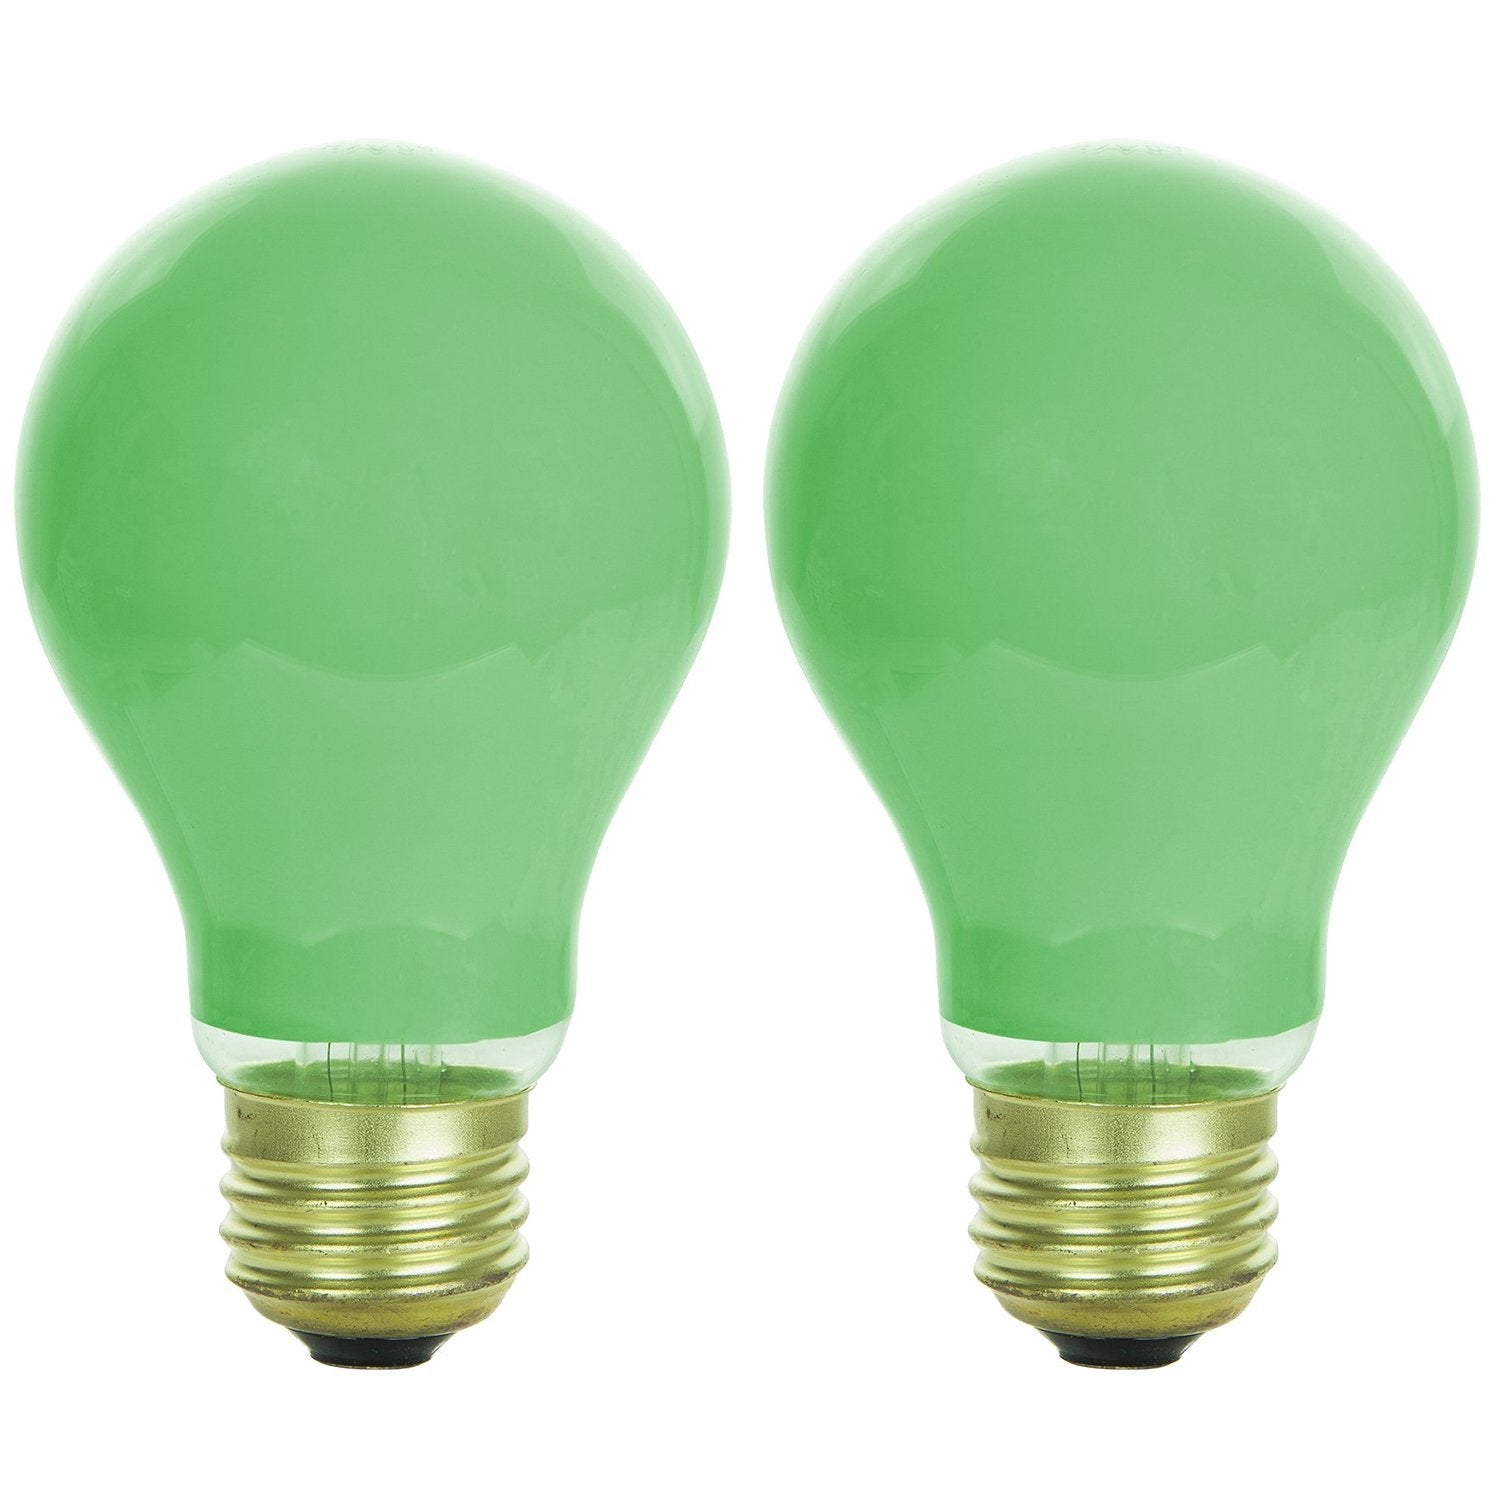 2 PK - SUNLITE 25w A19 120v Medium Base Ceramic Green Bulb